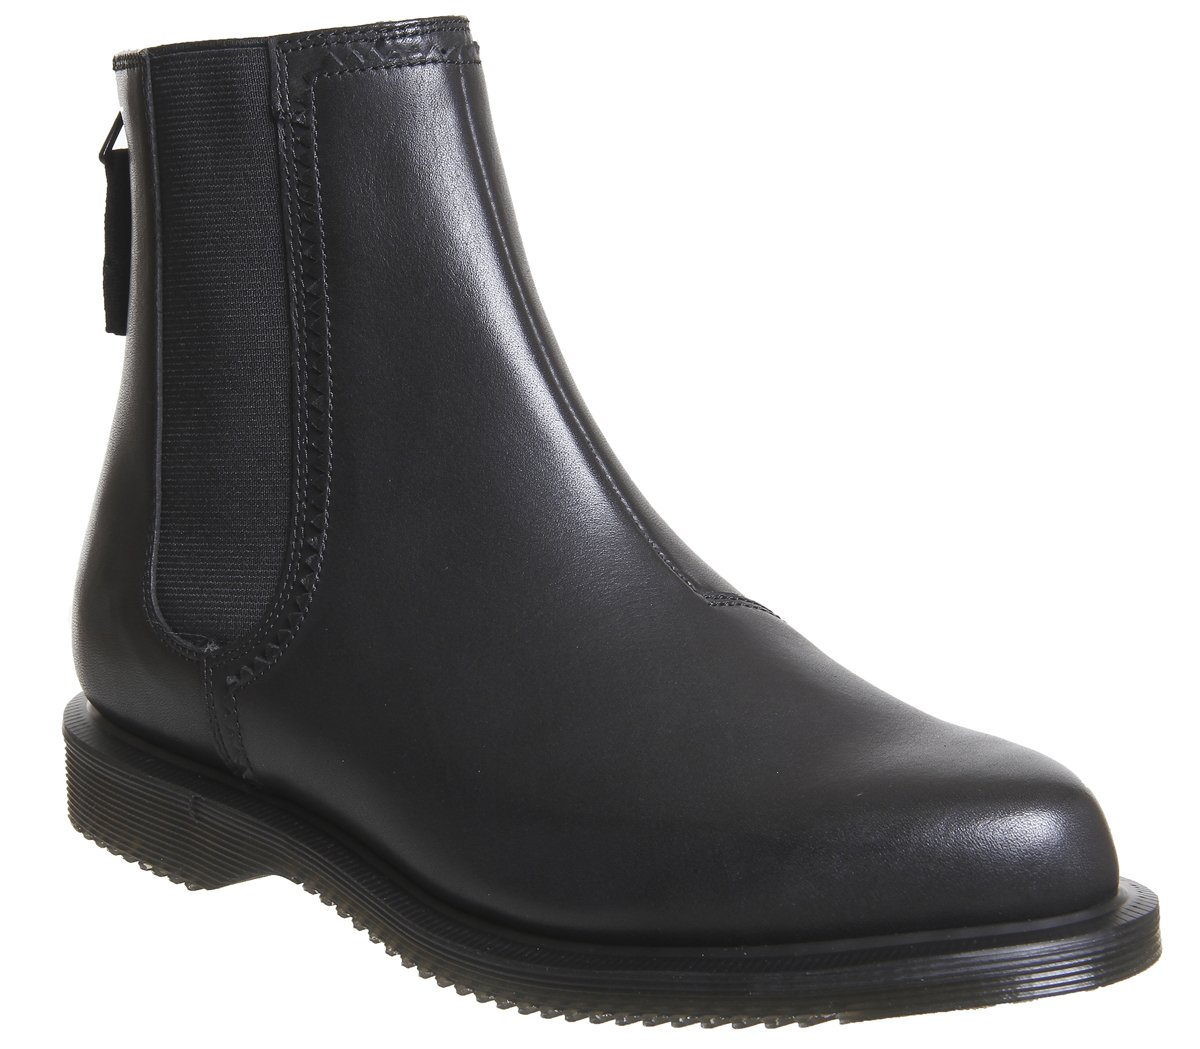 Dr. Martens Womens Zillow B071K8HRKZ 8 M UK|Black Temperley